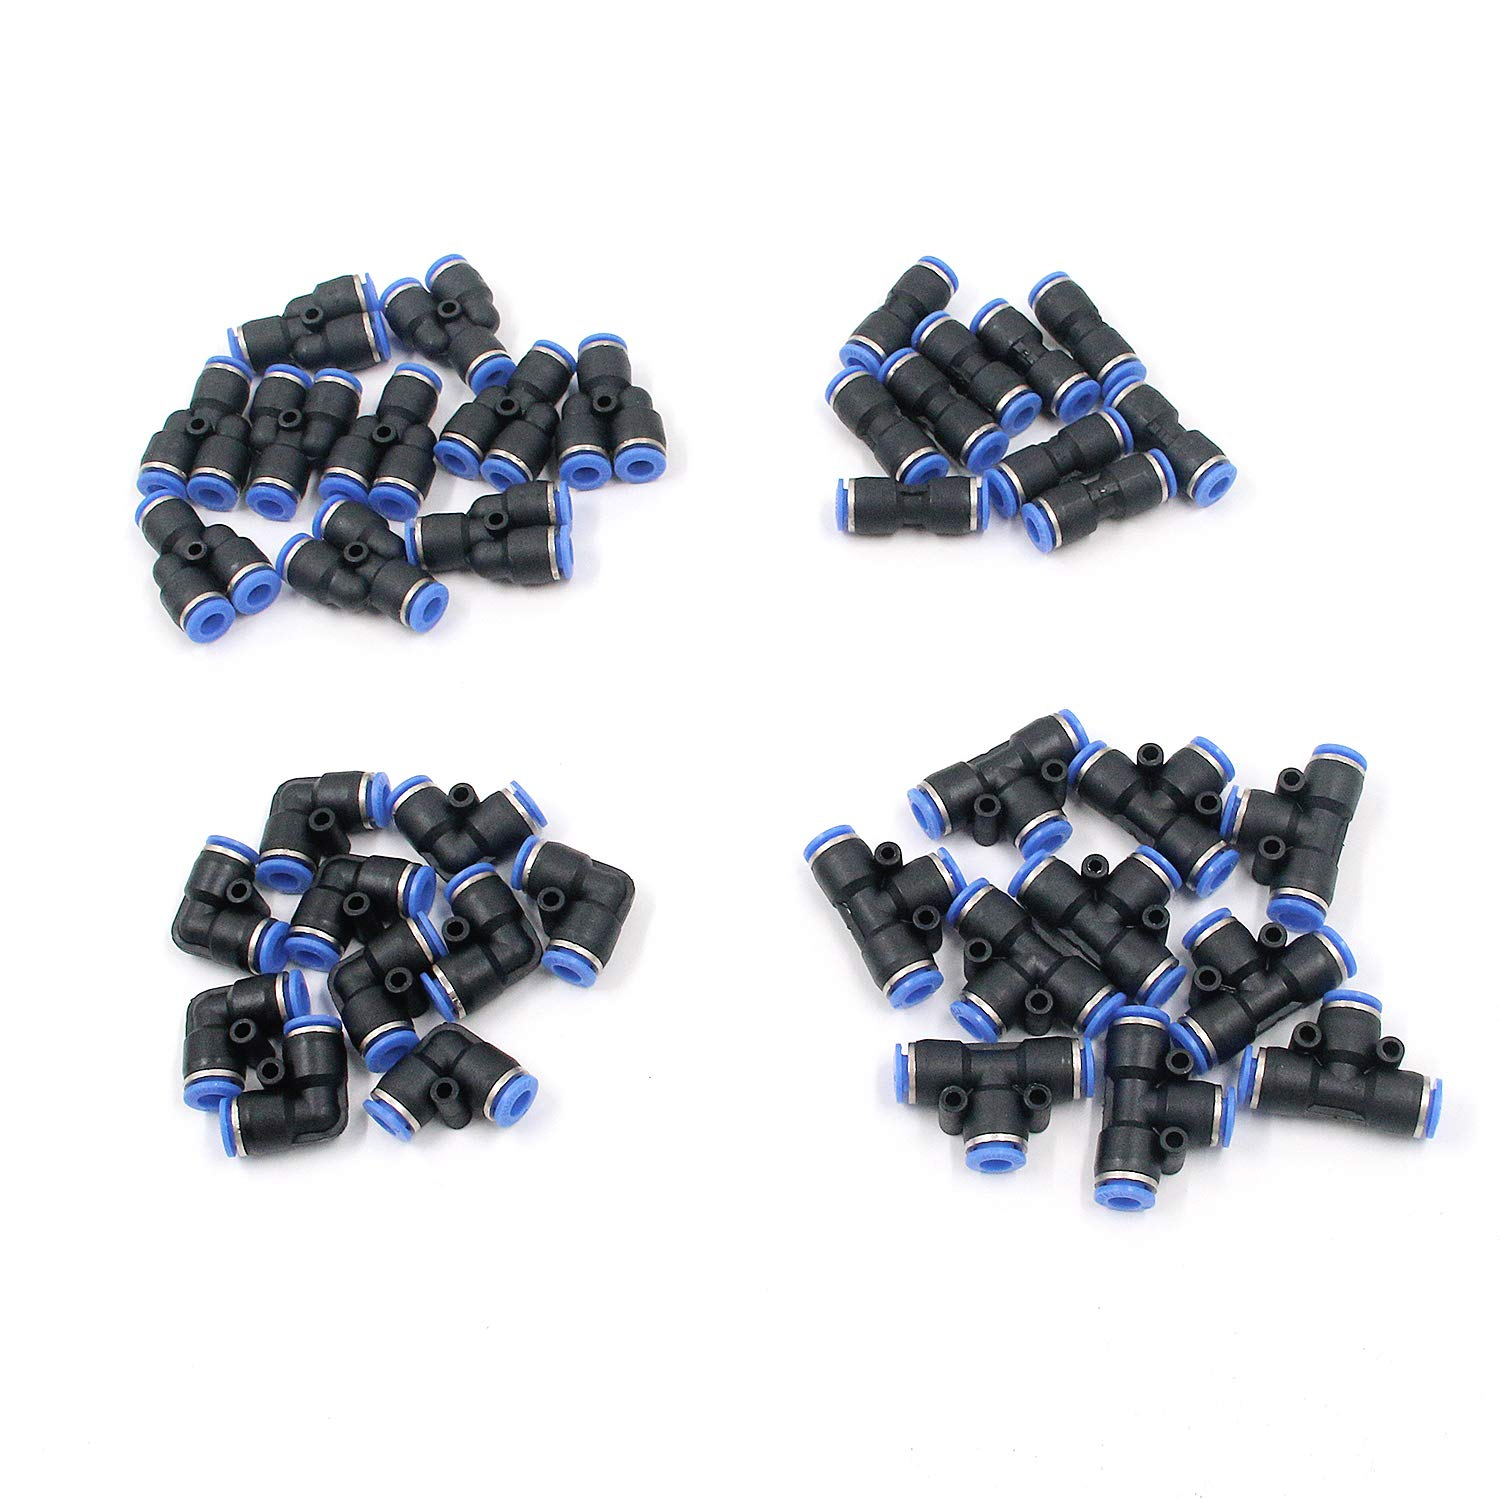 Antrader 40-Pack 1//4 Inch Od Push to Connect Fittings Pneumatic Fittings Combo Kit 10 Spliters+10 Elbows+10 Tee+10 Straight